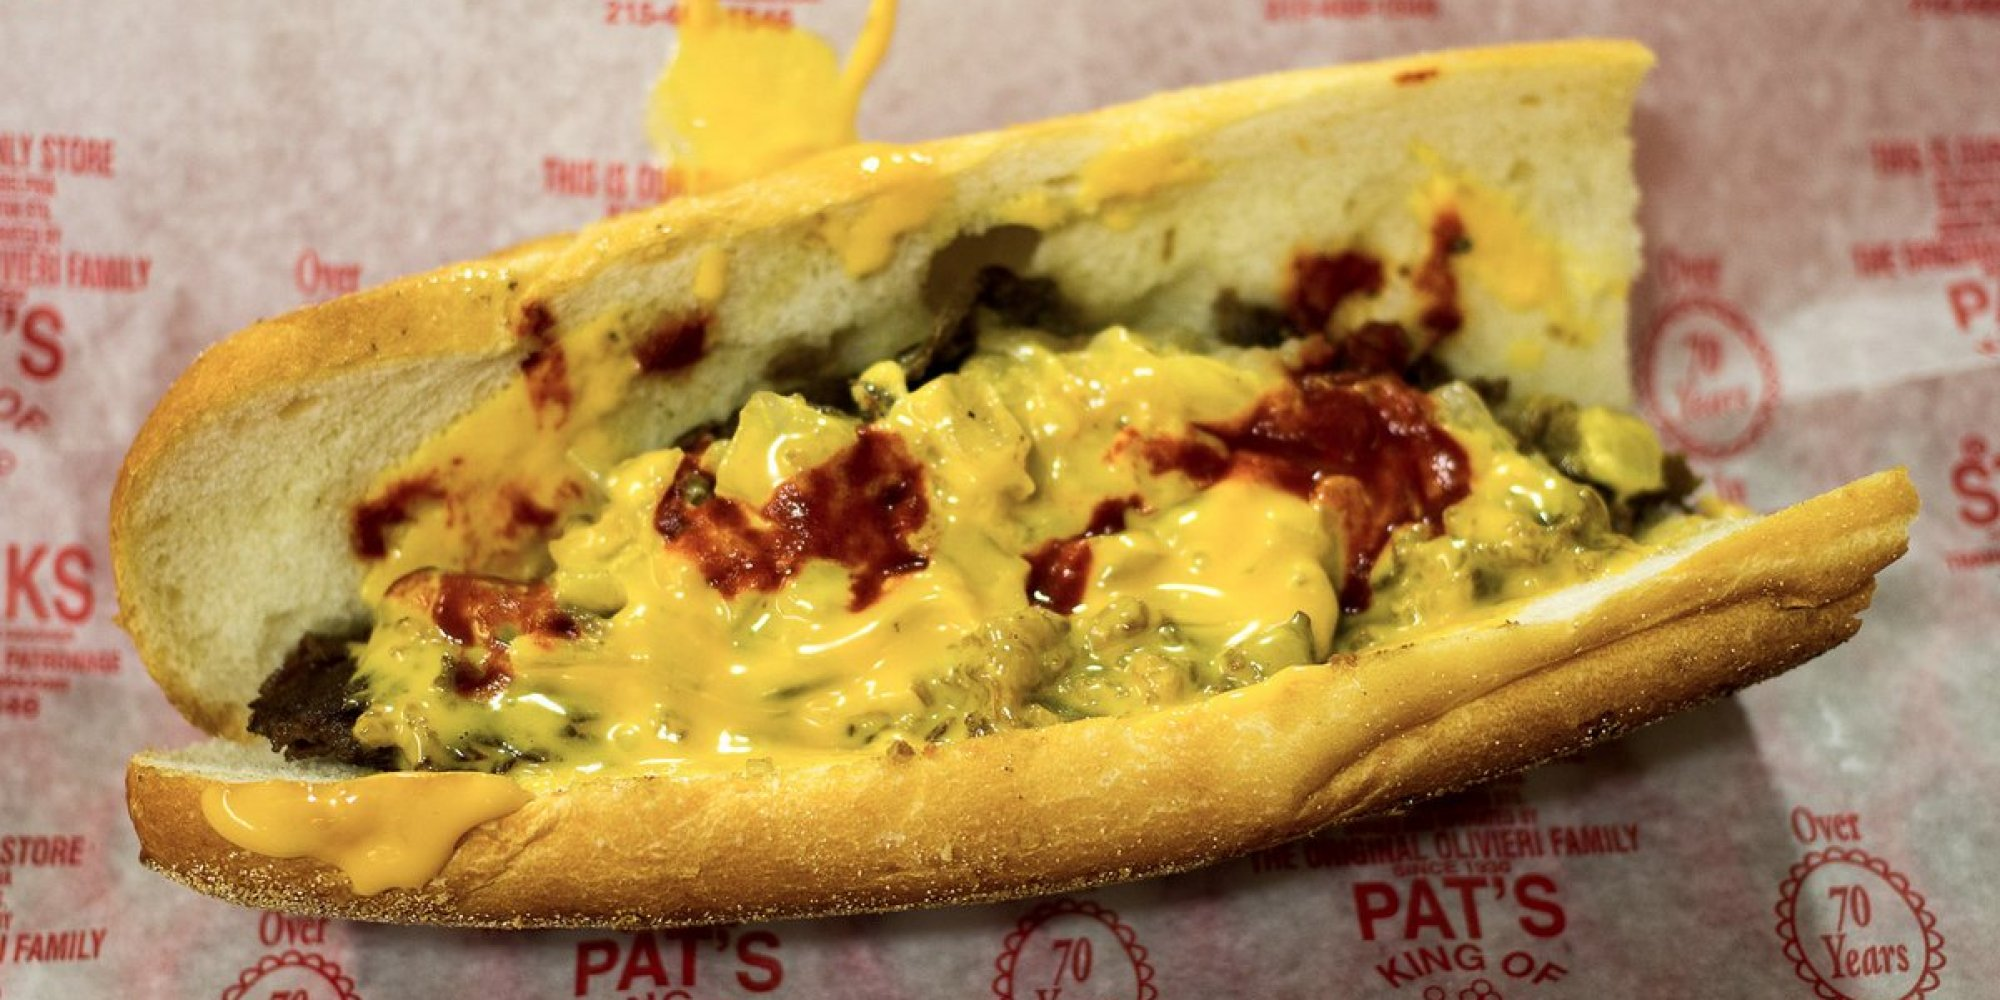 Best Philly Cheesesteaks List Puts Pat's & Geno's At The Bottom |...